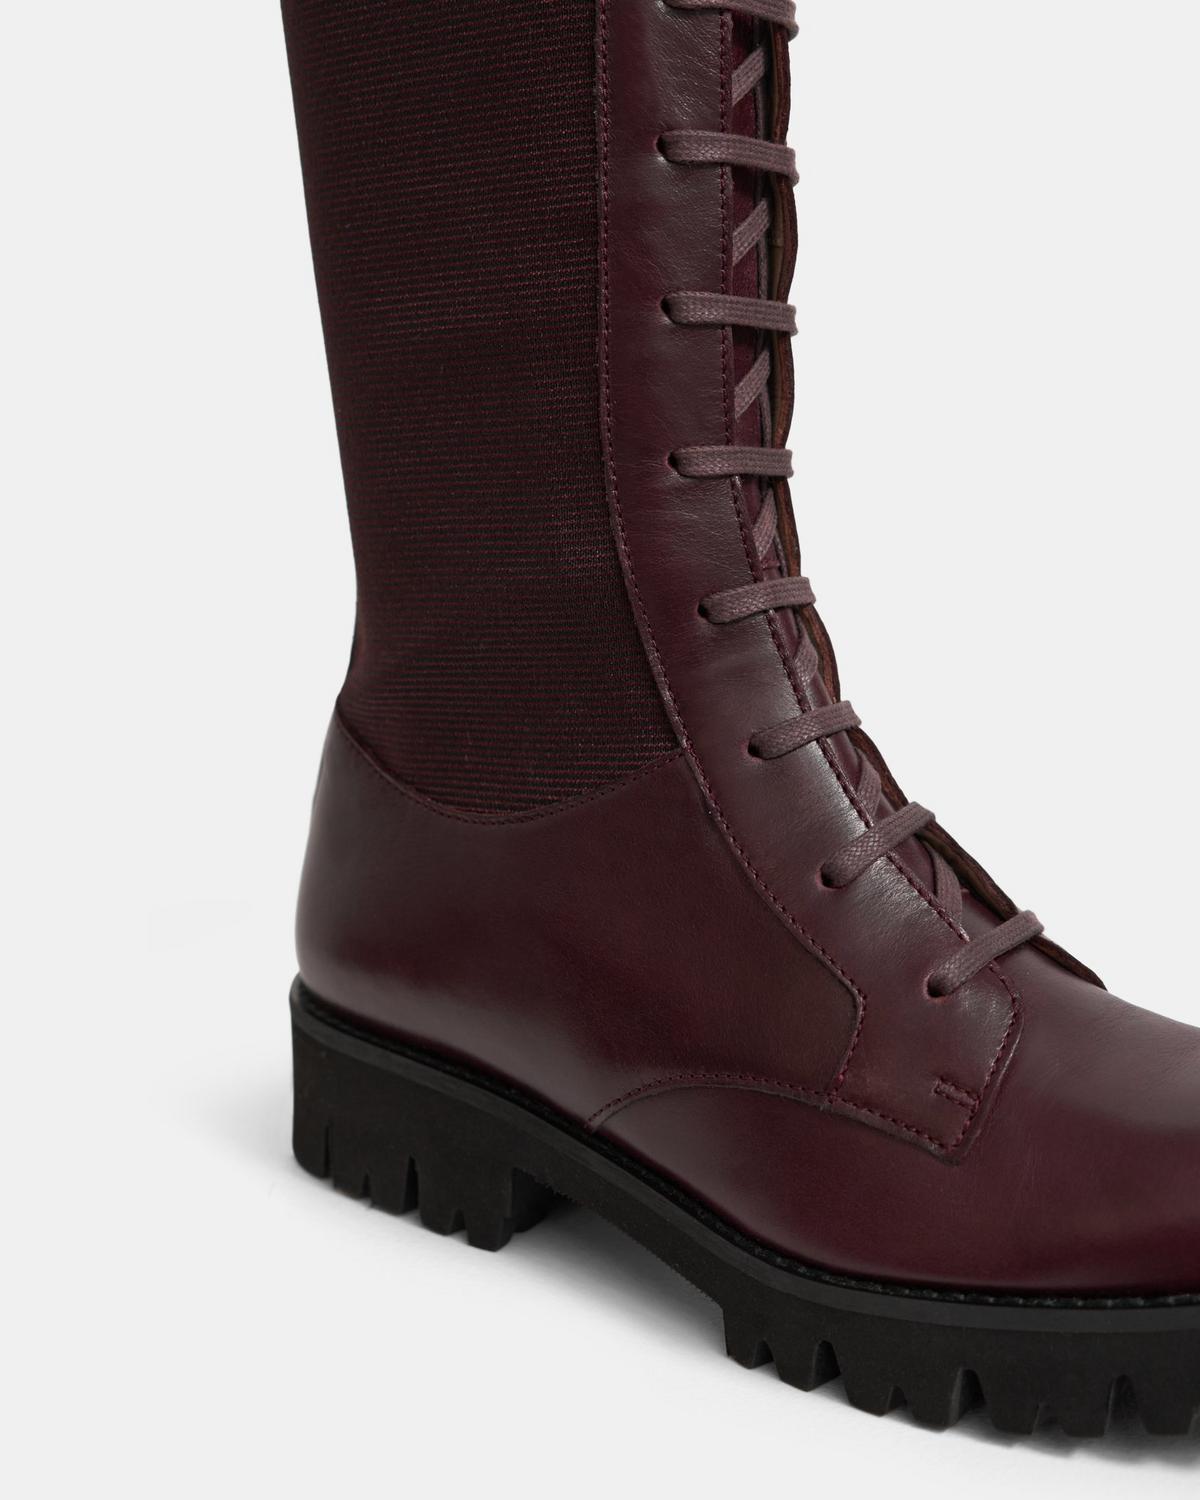 LACED LUG BOOT